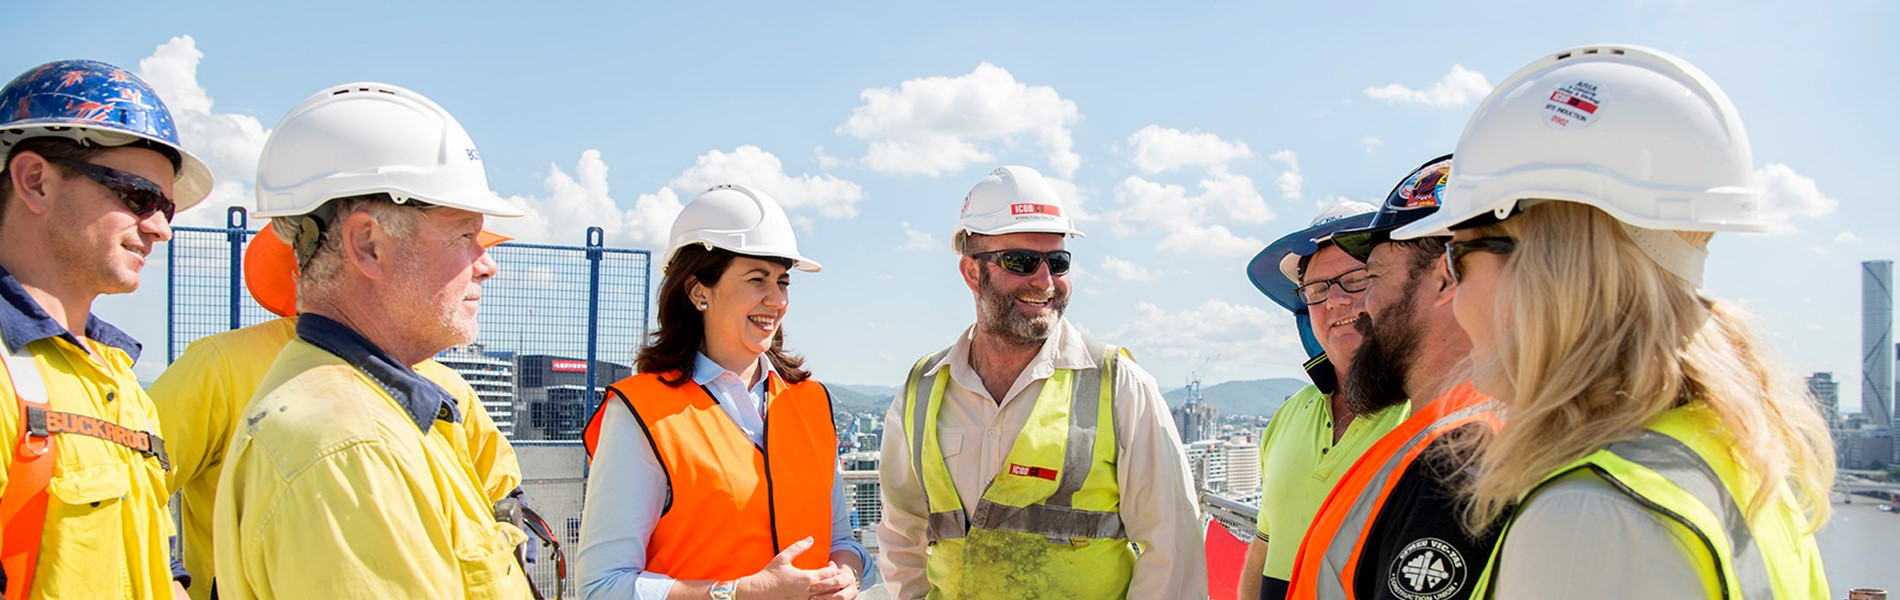 Queensland Made: Labor's Plan to Protect and Create